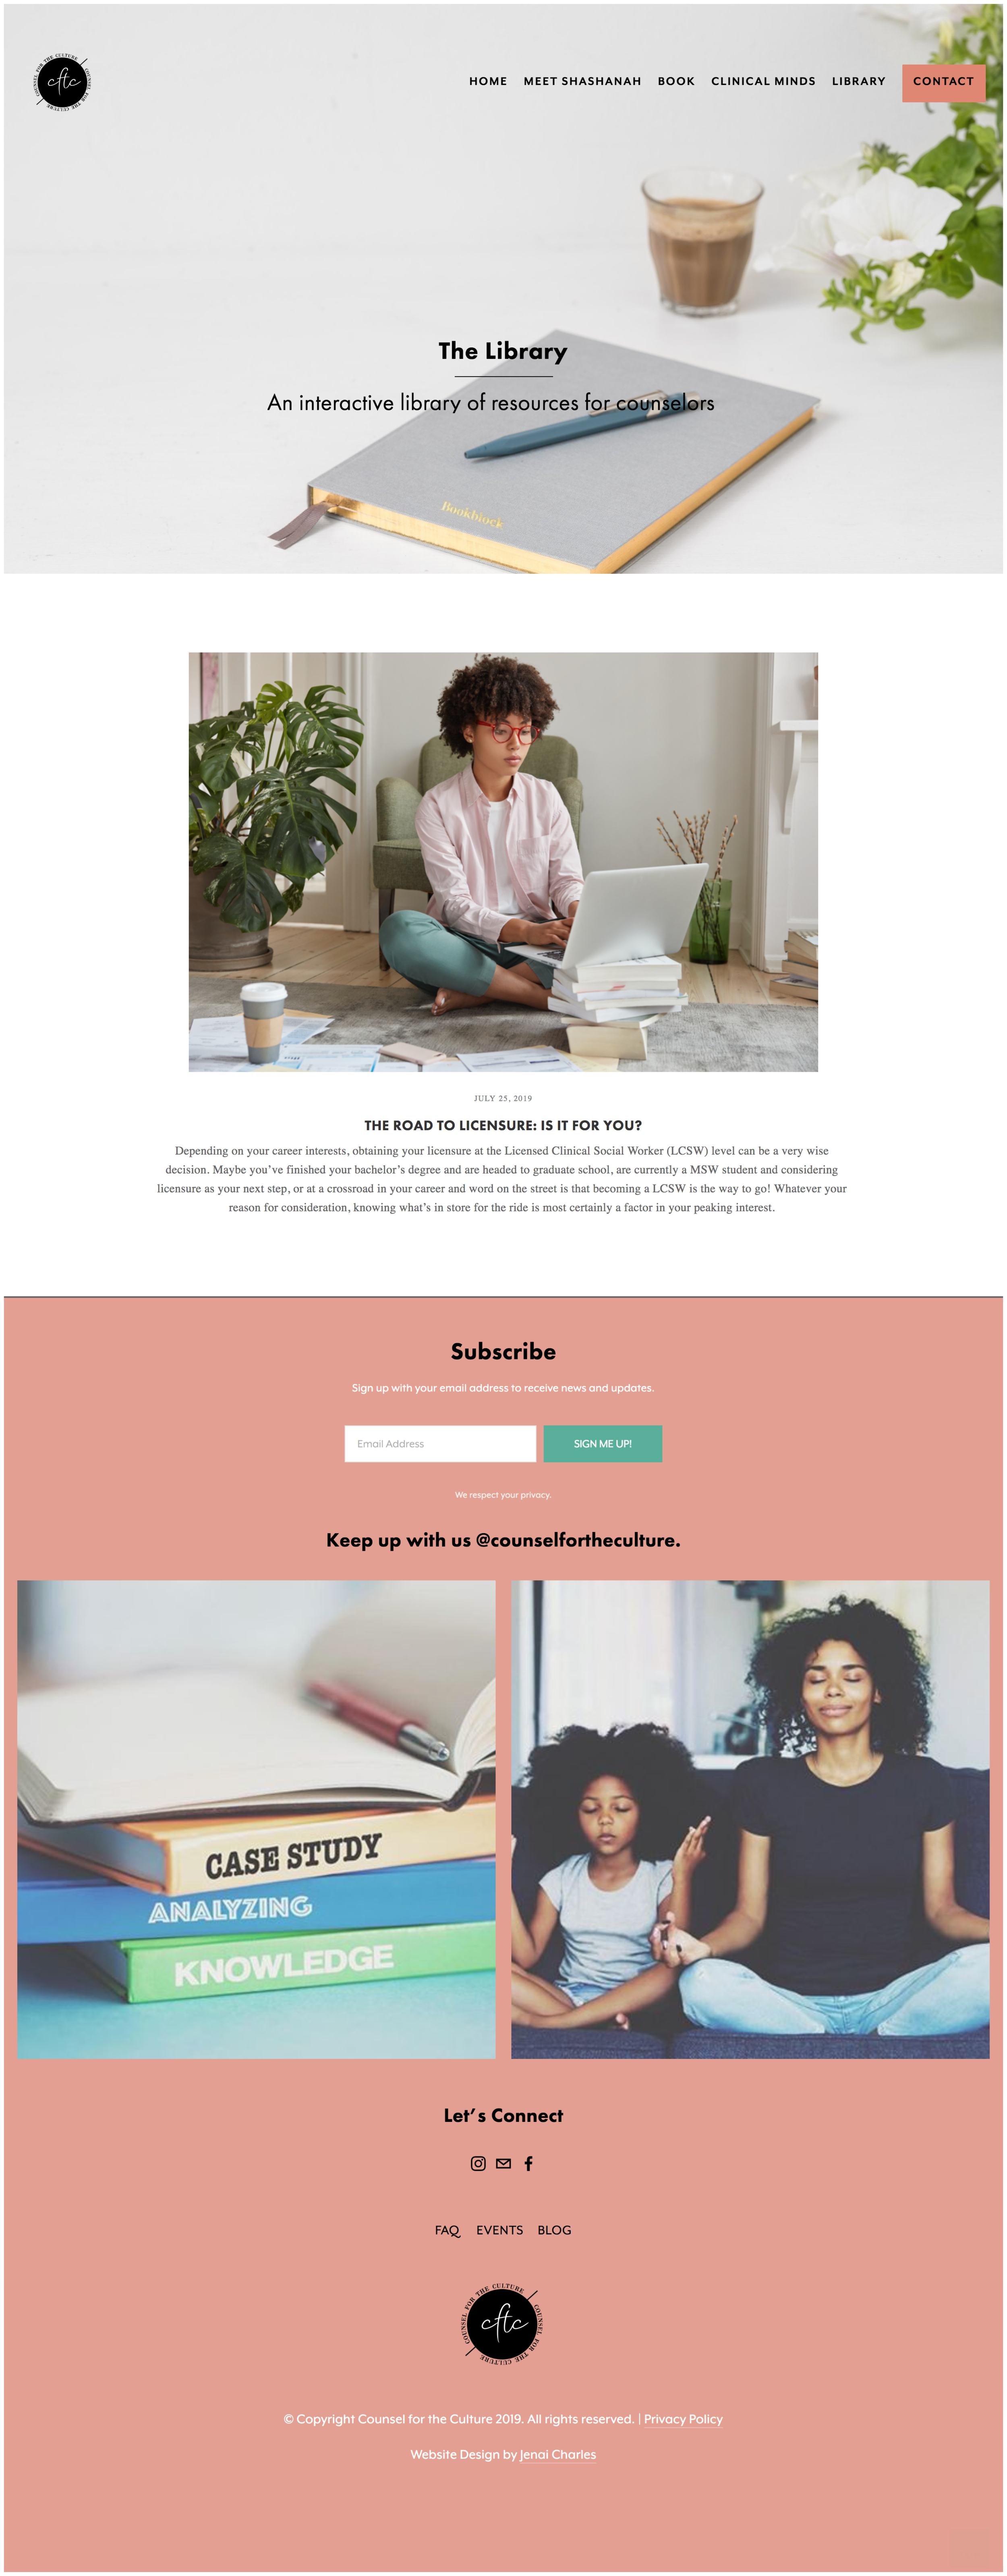 screencapture-counselfortheculture-new-blog-2019-07-28-16_51_43.png